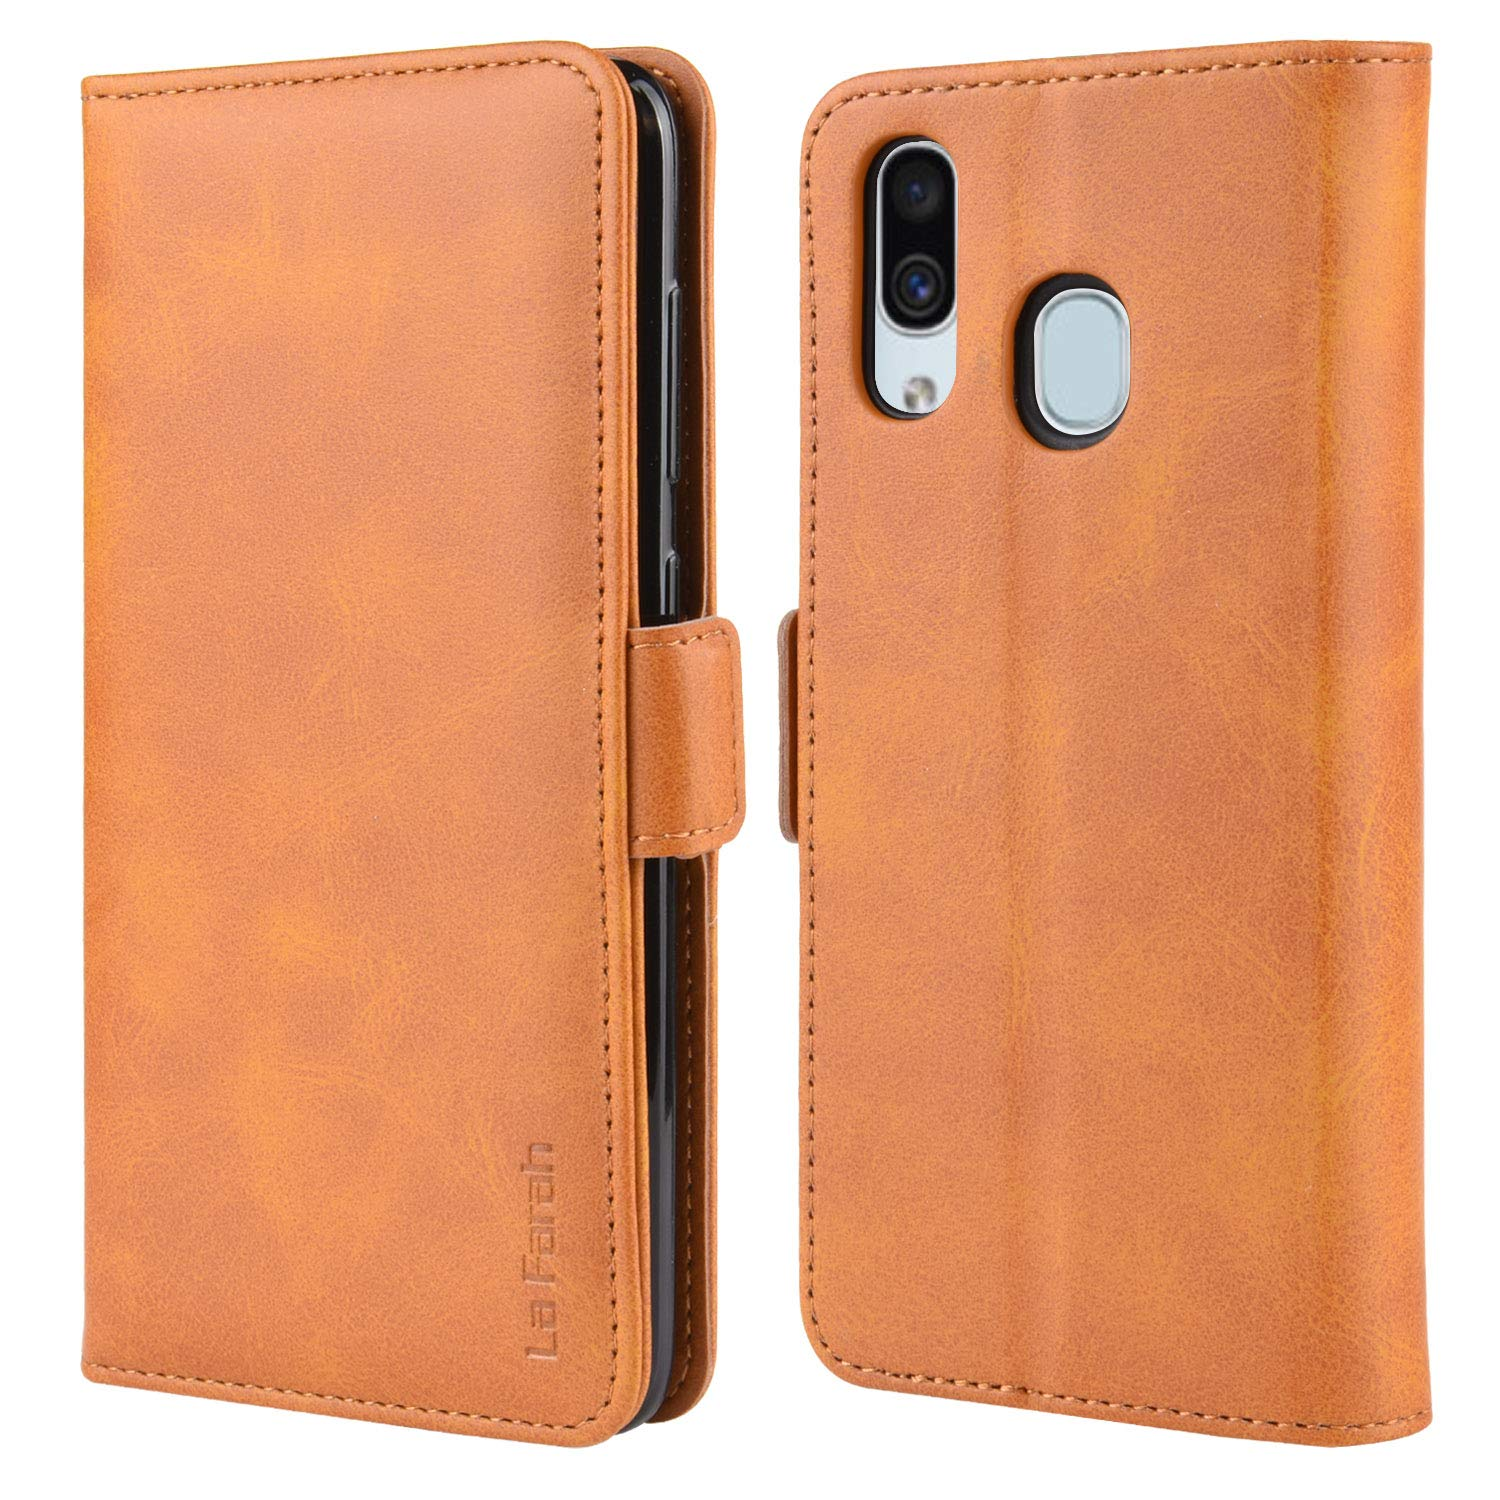 La Farah Samsung Galaxy A20 Case,Leather Cell Phone Wallet Flip Case Protective Phone Cover with Card Holders and Kickstand for Samsung Galaxy A20 - Vintage Orange by La Farah